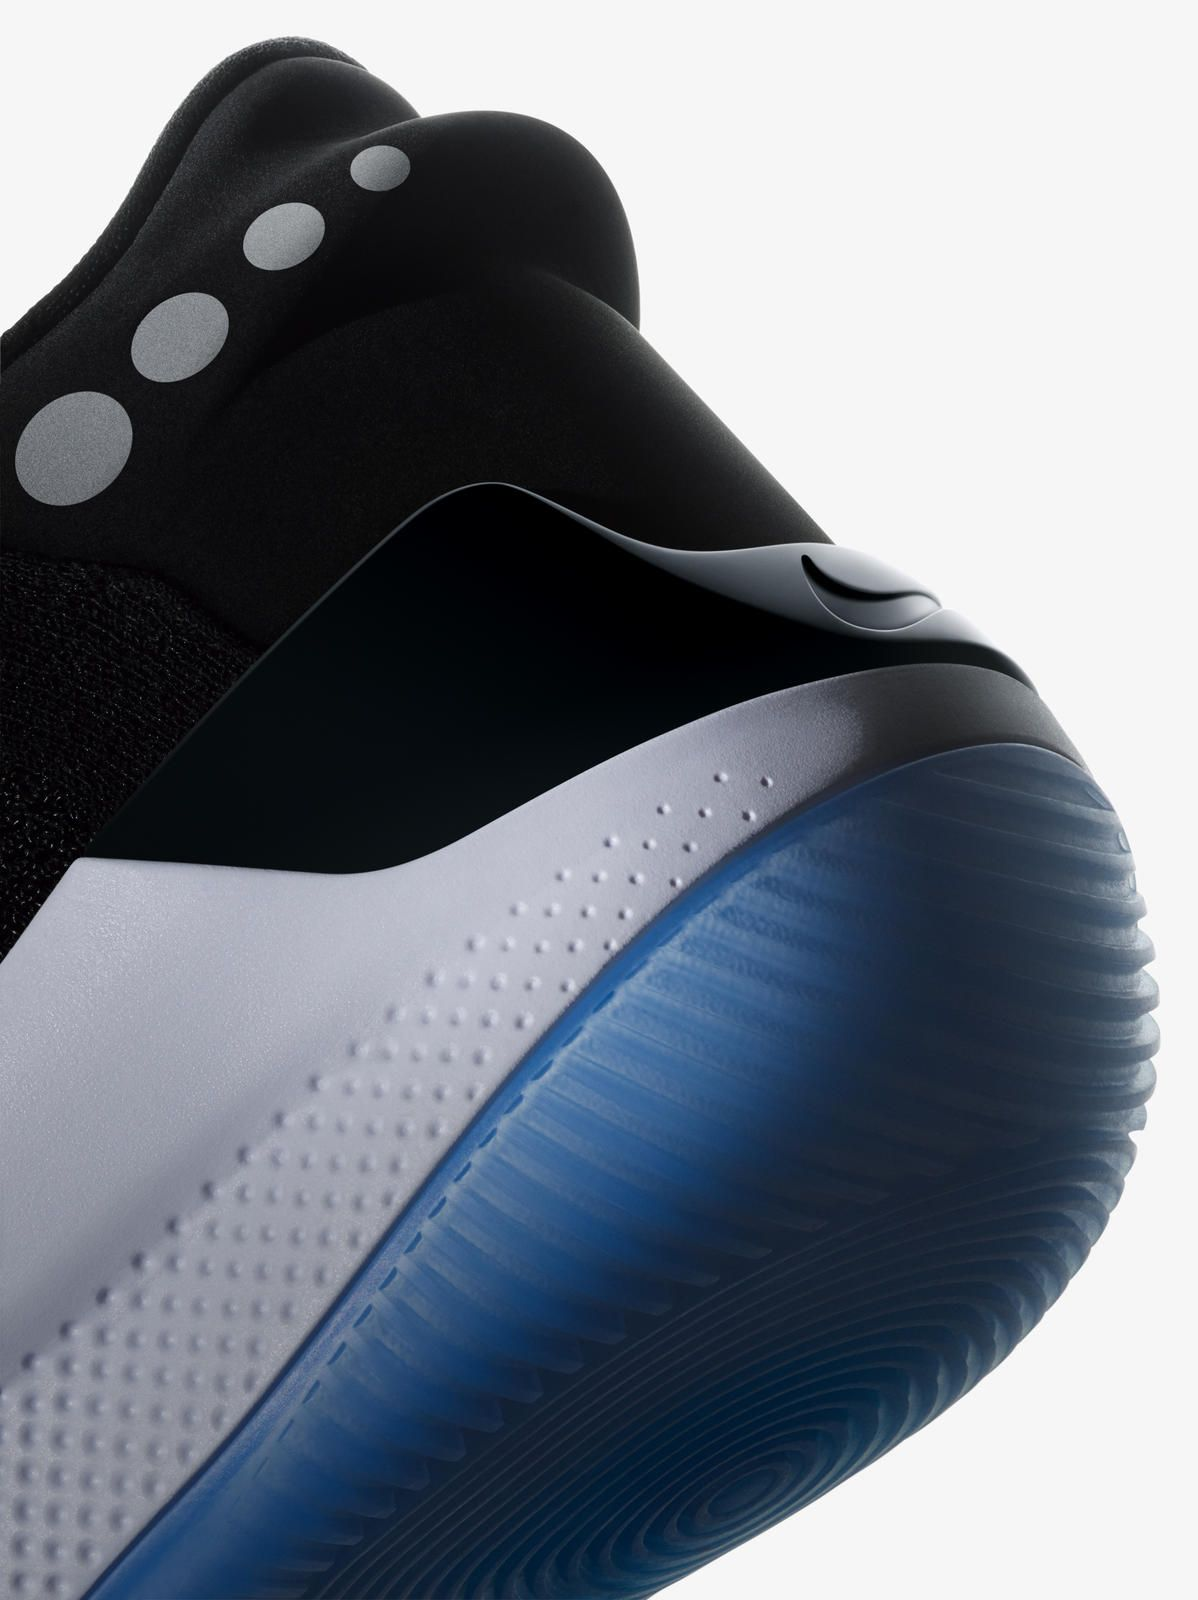 Sp19_BB_Nike_Adapt_20181218_NIKE0538_Detail6_native_1600